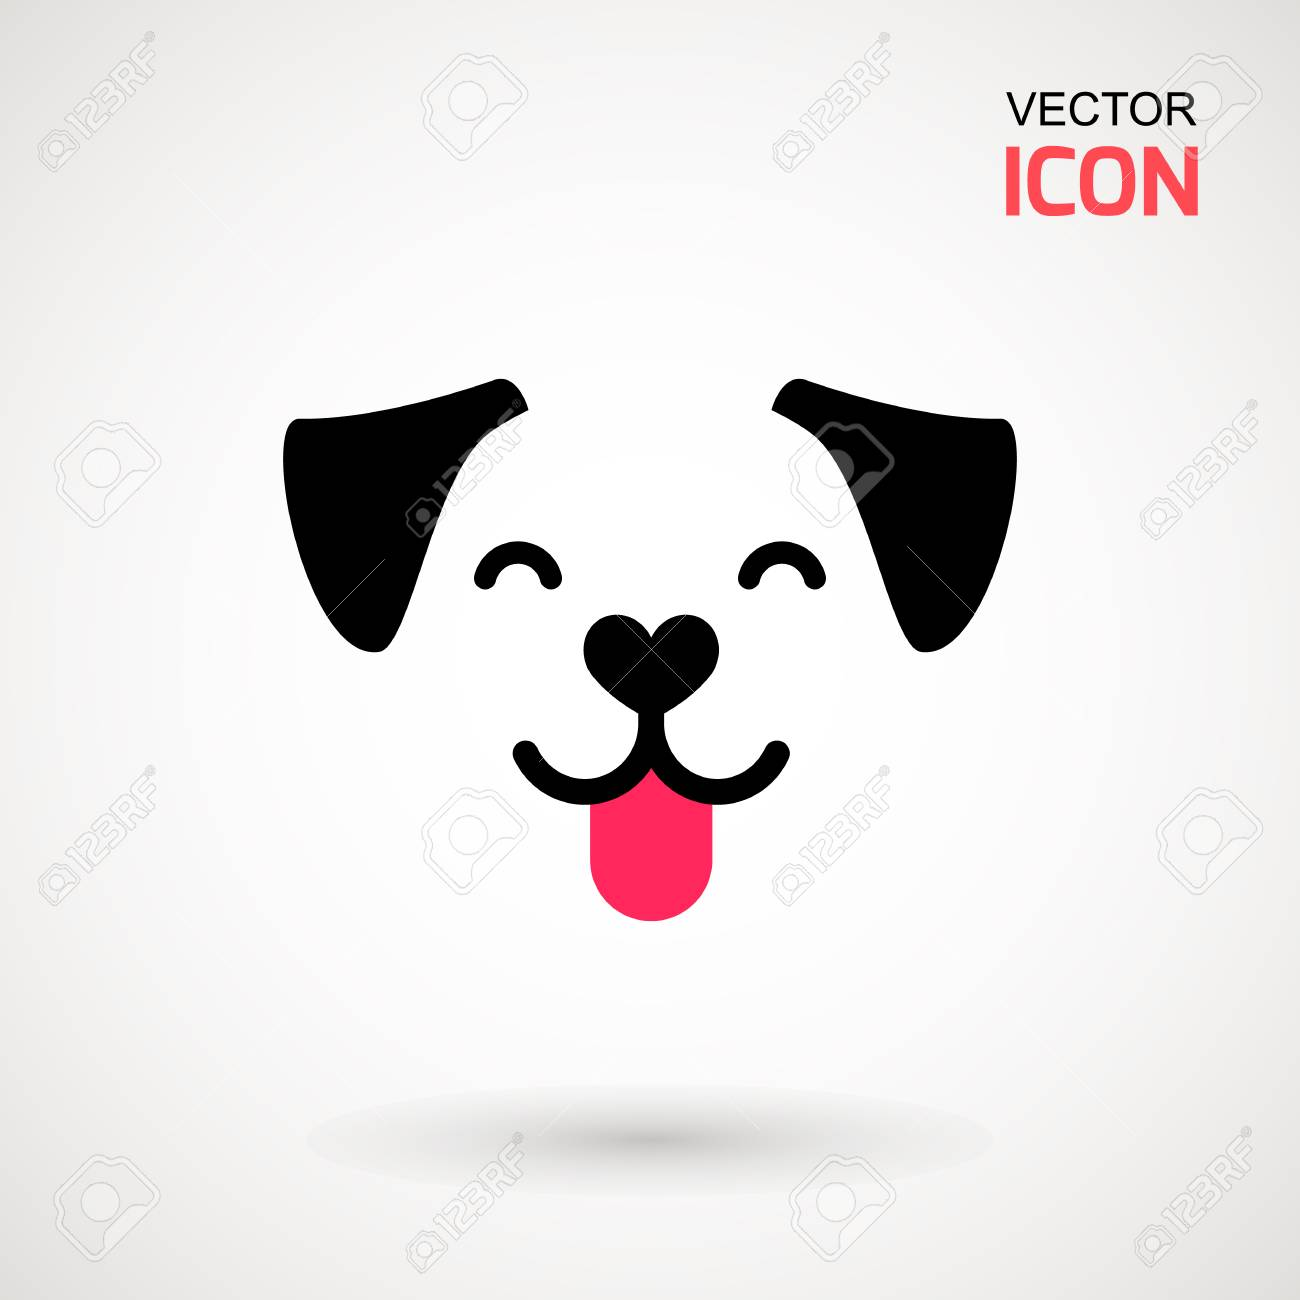 Dog Head Icon Flat Style Cartoon Dog Face Vector Illustration Royalty Free Cliparts Vectors And Stock Illustration Image 104393590